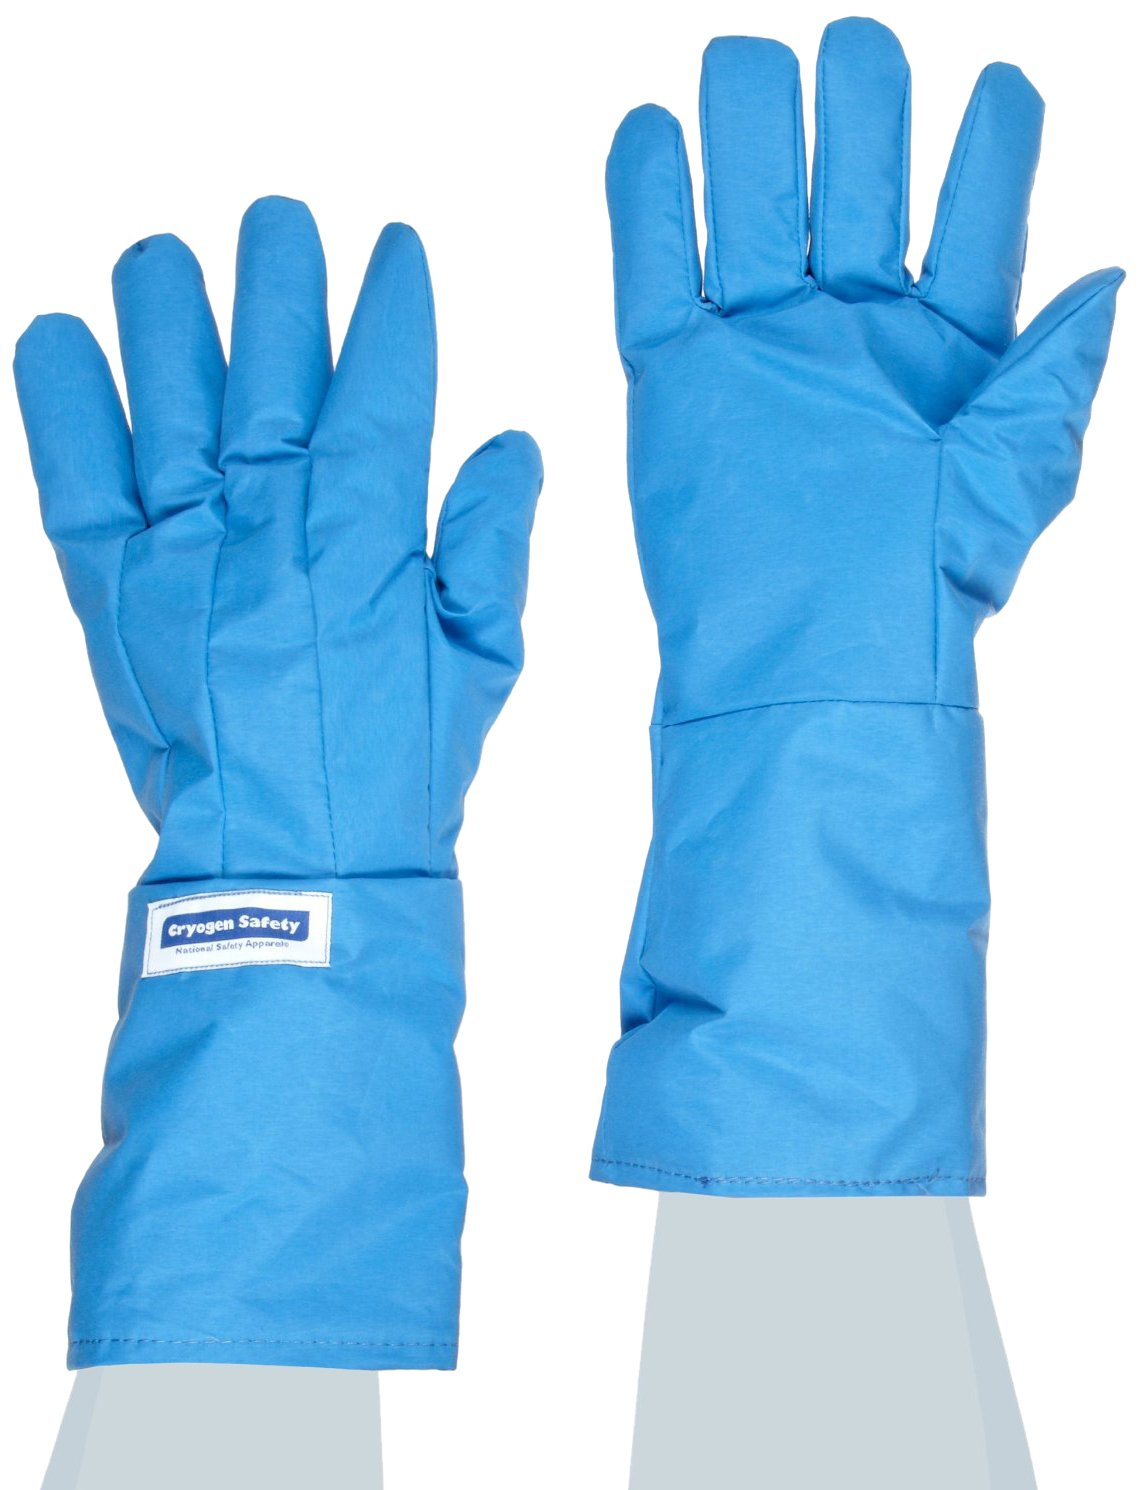 National Safety Apparel G99CRBERSMMA Nylon Taslan and PTFE Mid-Arm Standard Water Resistant Safety Glove, Cryogenic, 14'' - 15'' Length, Small, Blue